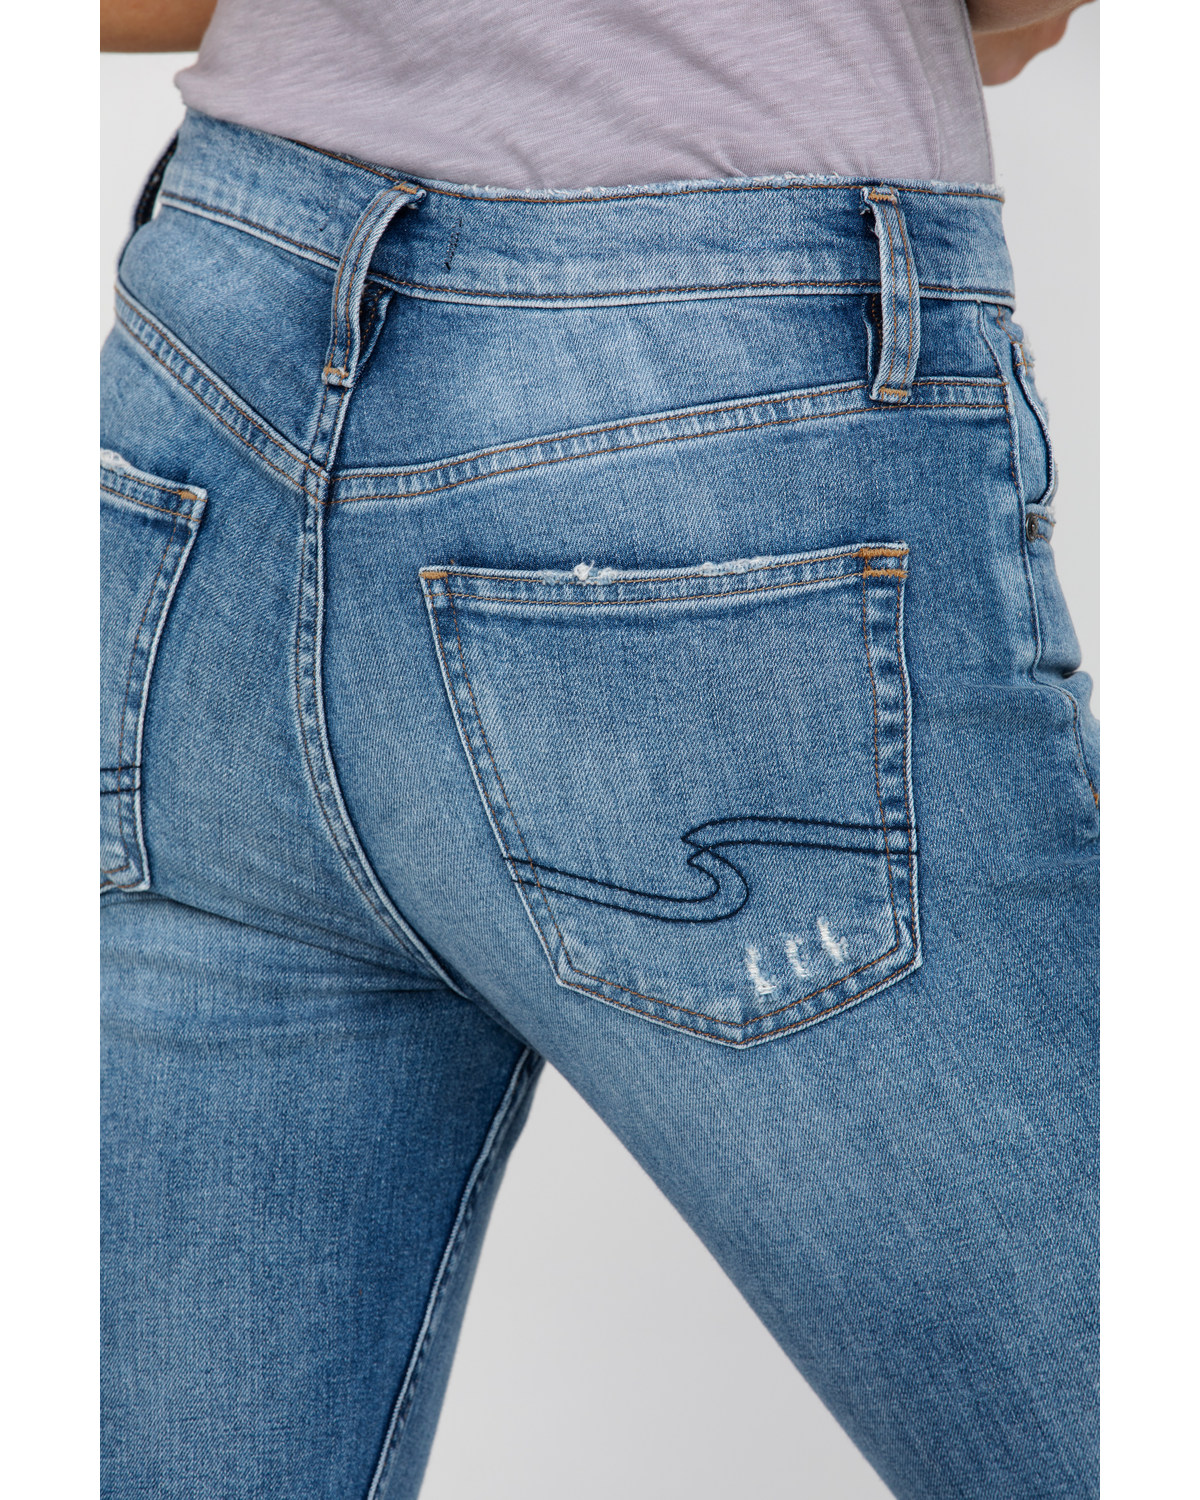 7a3171a2d0f Silver Women s Frisco High Rise Tapered Jeans